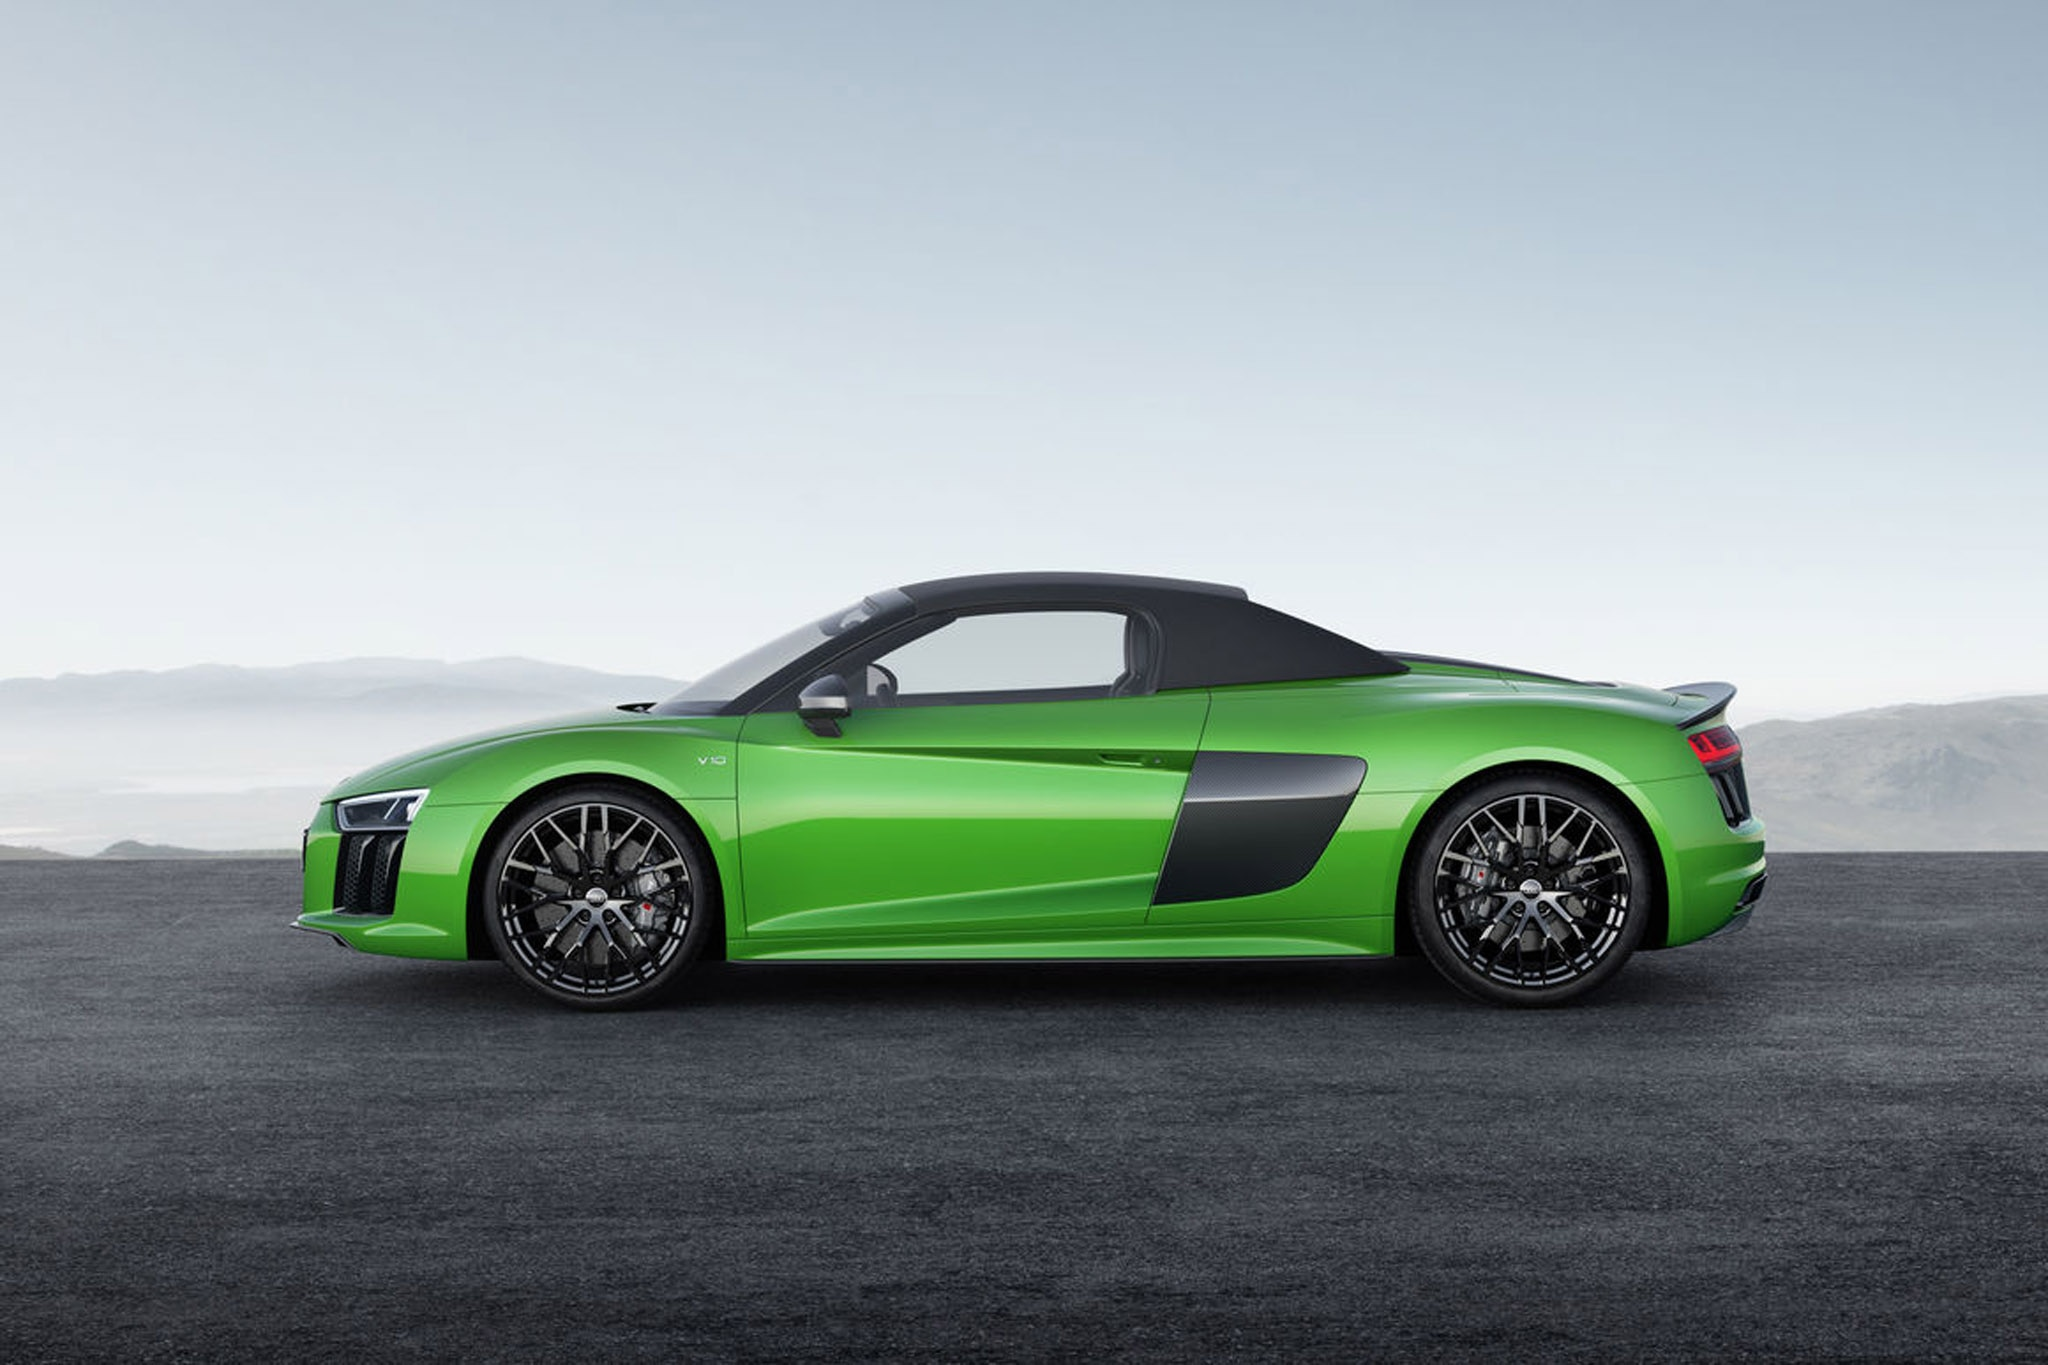 2018 Audi R8 Spyder V10 Plus Drops With 610 Horsepower Automobile